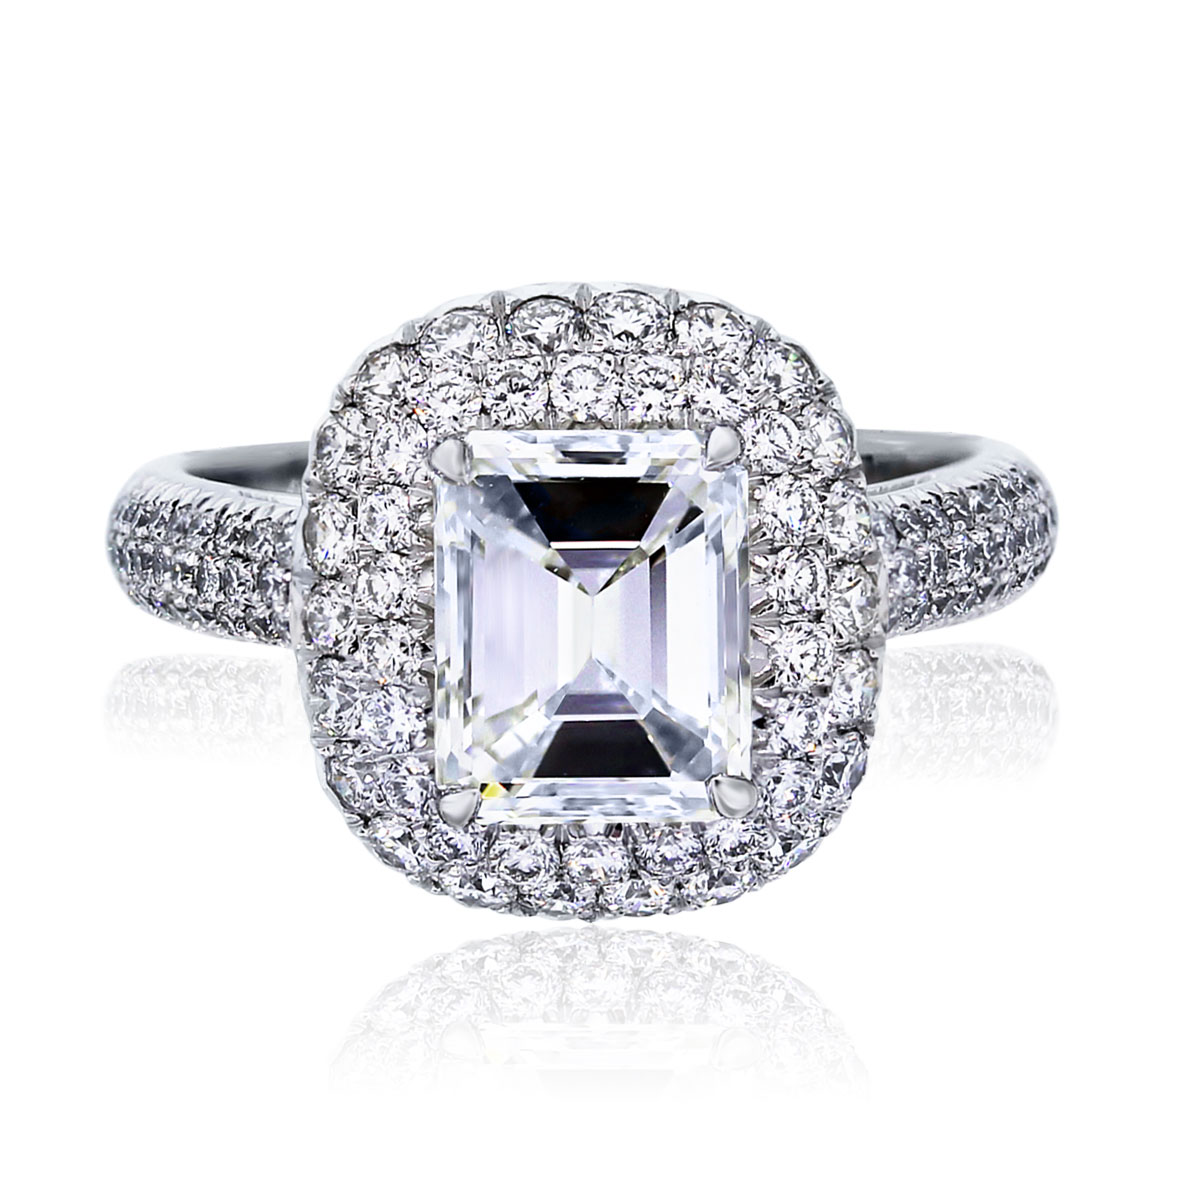 You are viewing this Platinum 1.79ct Emerald Cut Diamond GIA certified Engagement Ring!